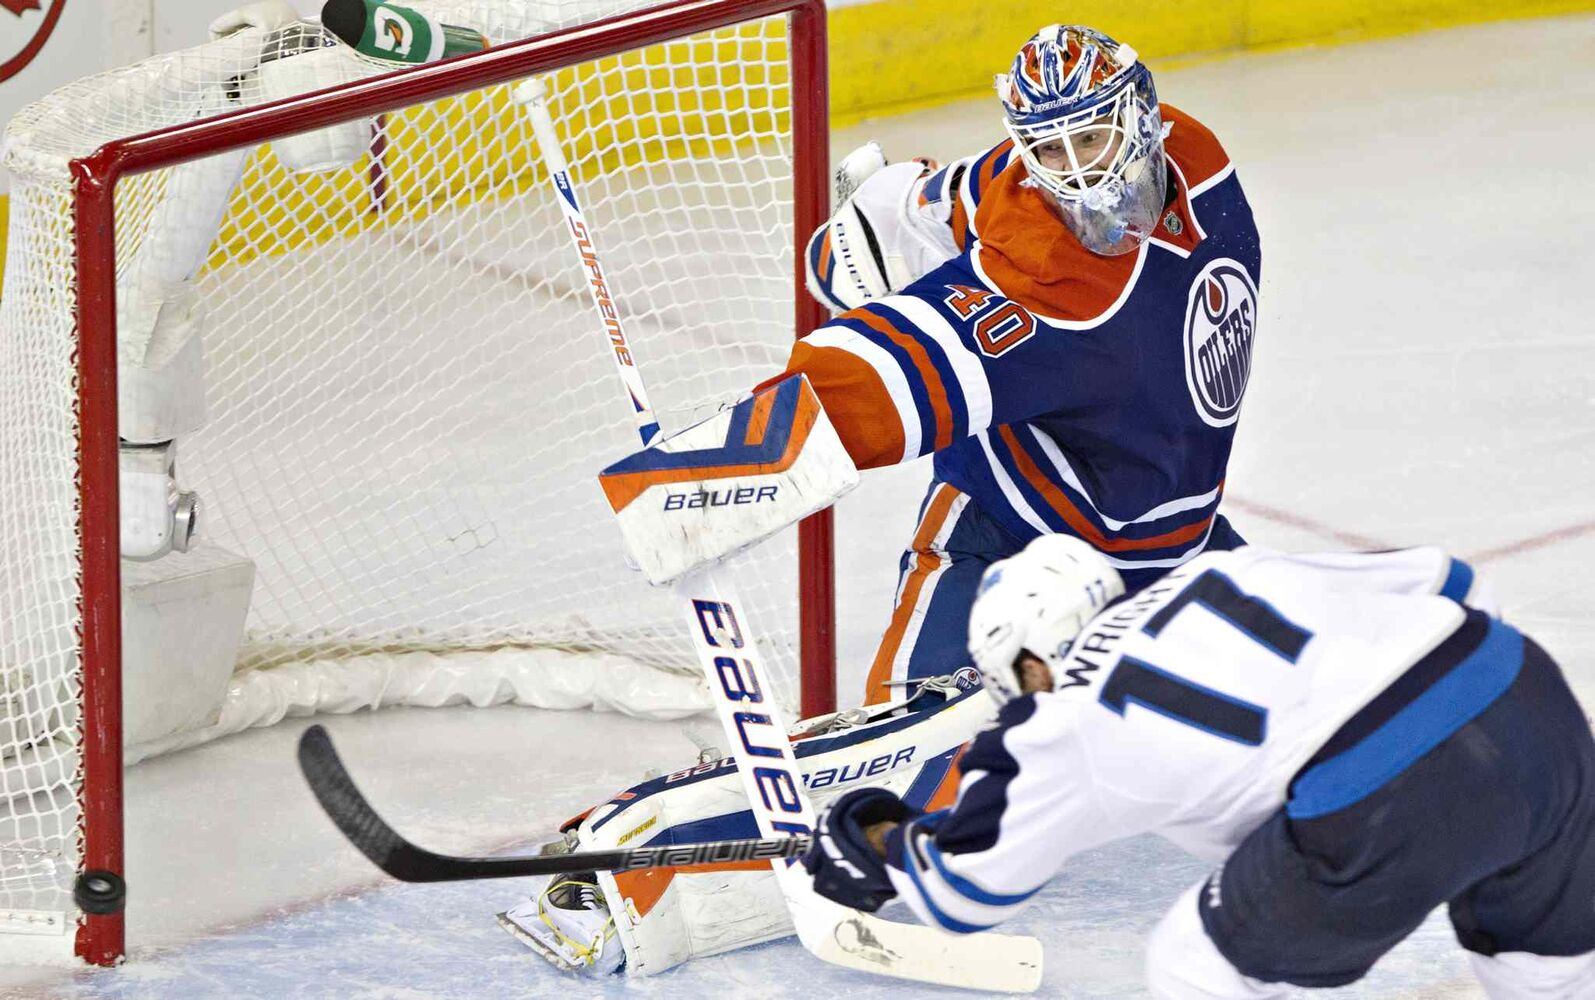 Winnipeg Jets' James Wright (17) hits the post as Edmonton Oilers goalie Devan Dubnyk (40) looks on during second period NHL hockey action in Edmonton Tuesday. (Jason Franson / The Canadian Press)